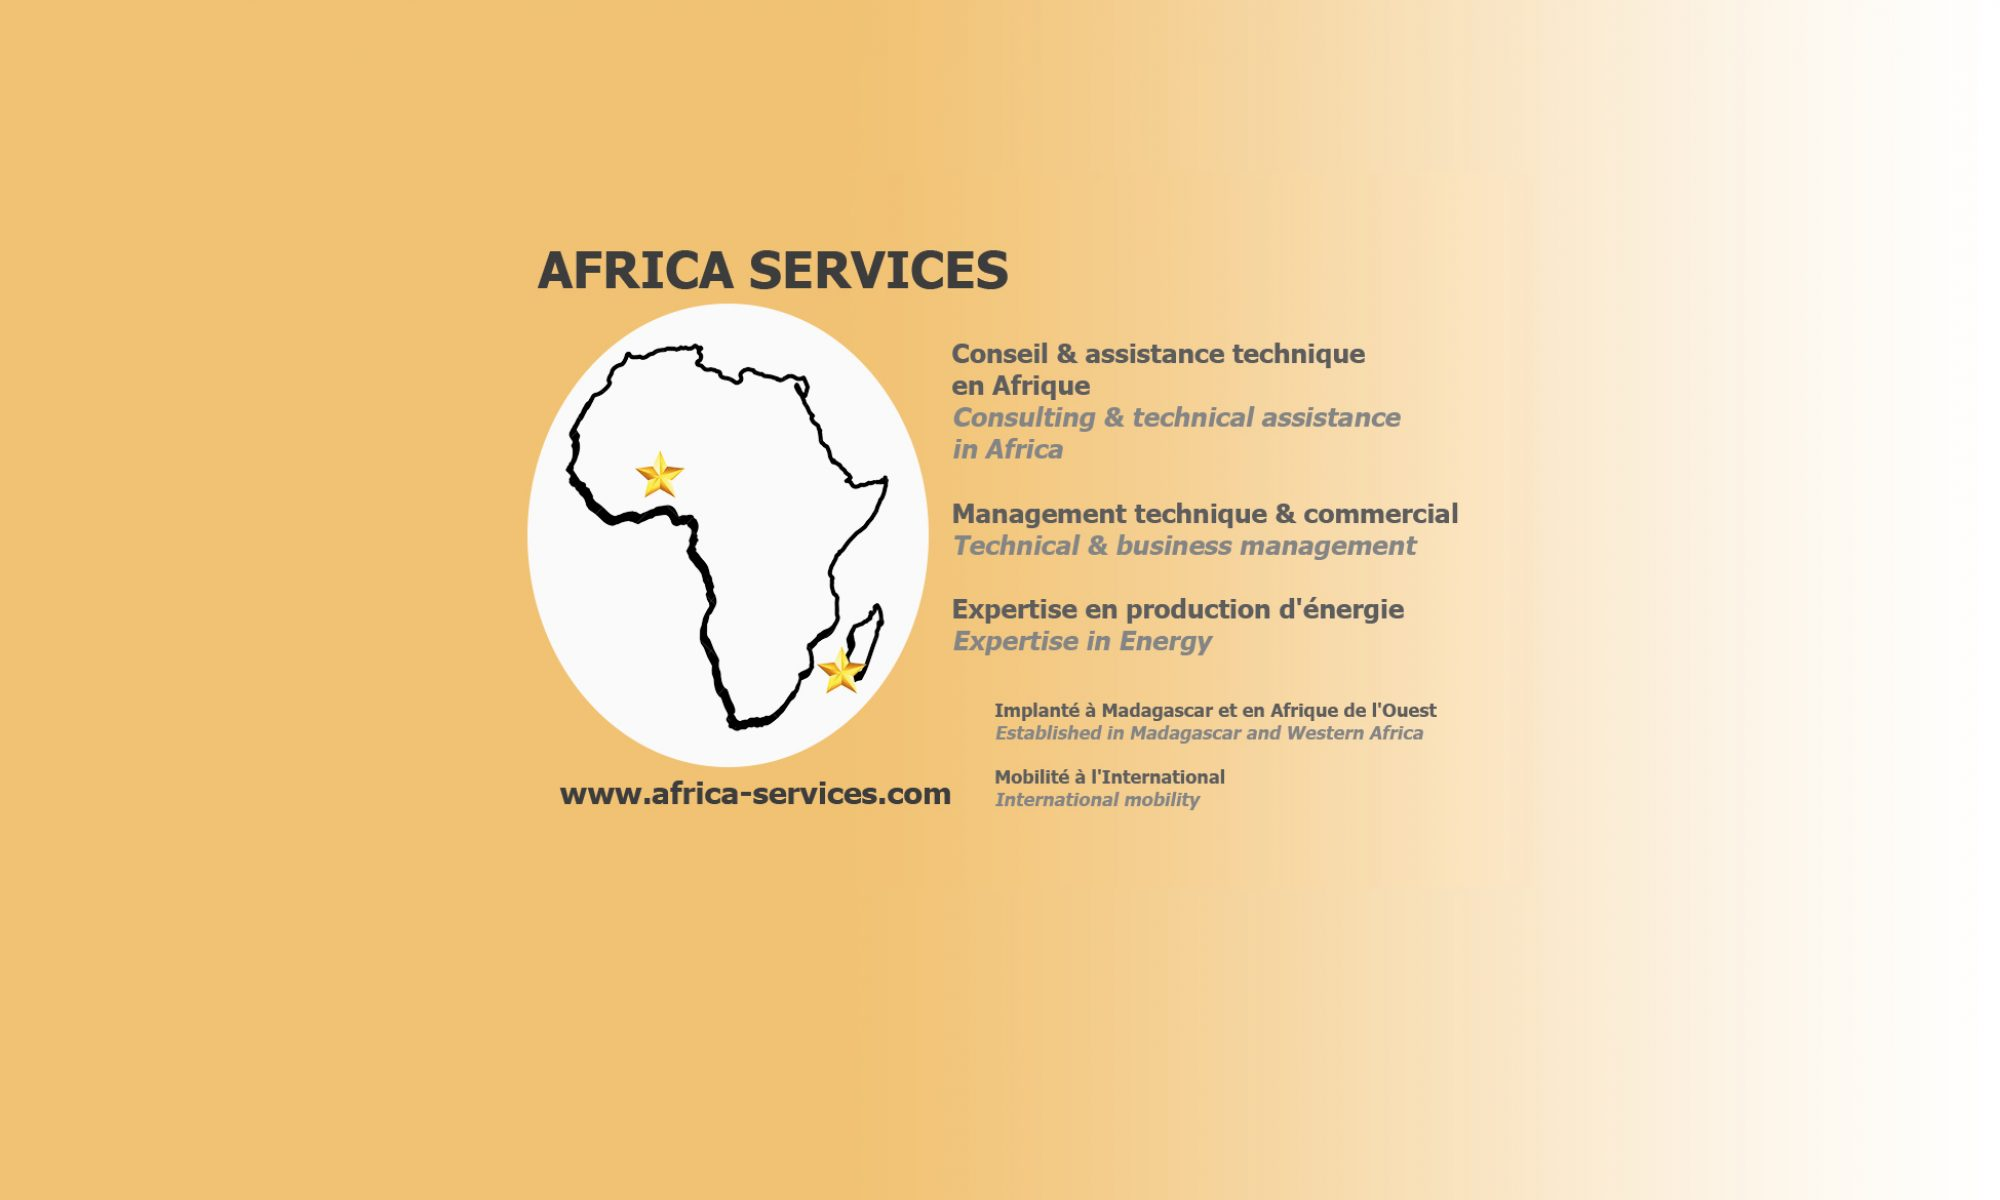 Africa Services